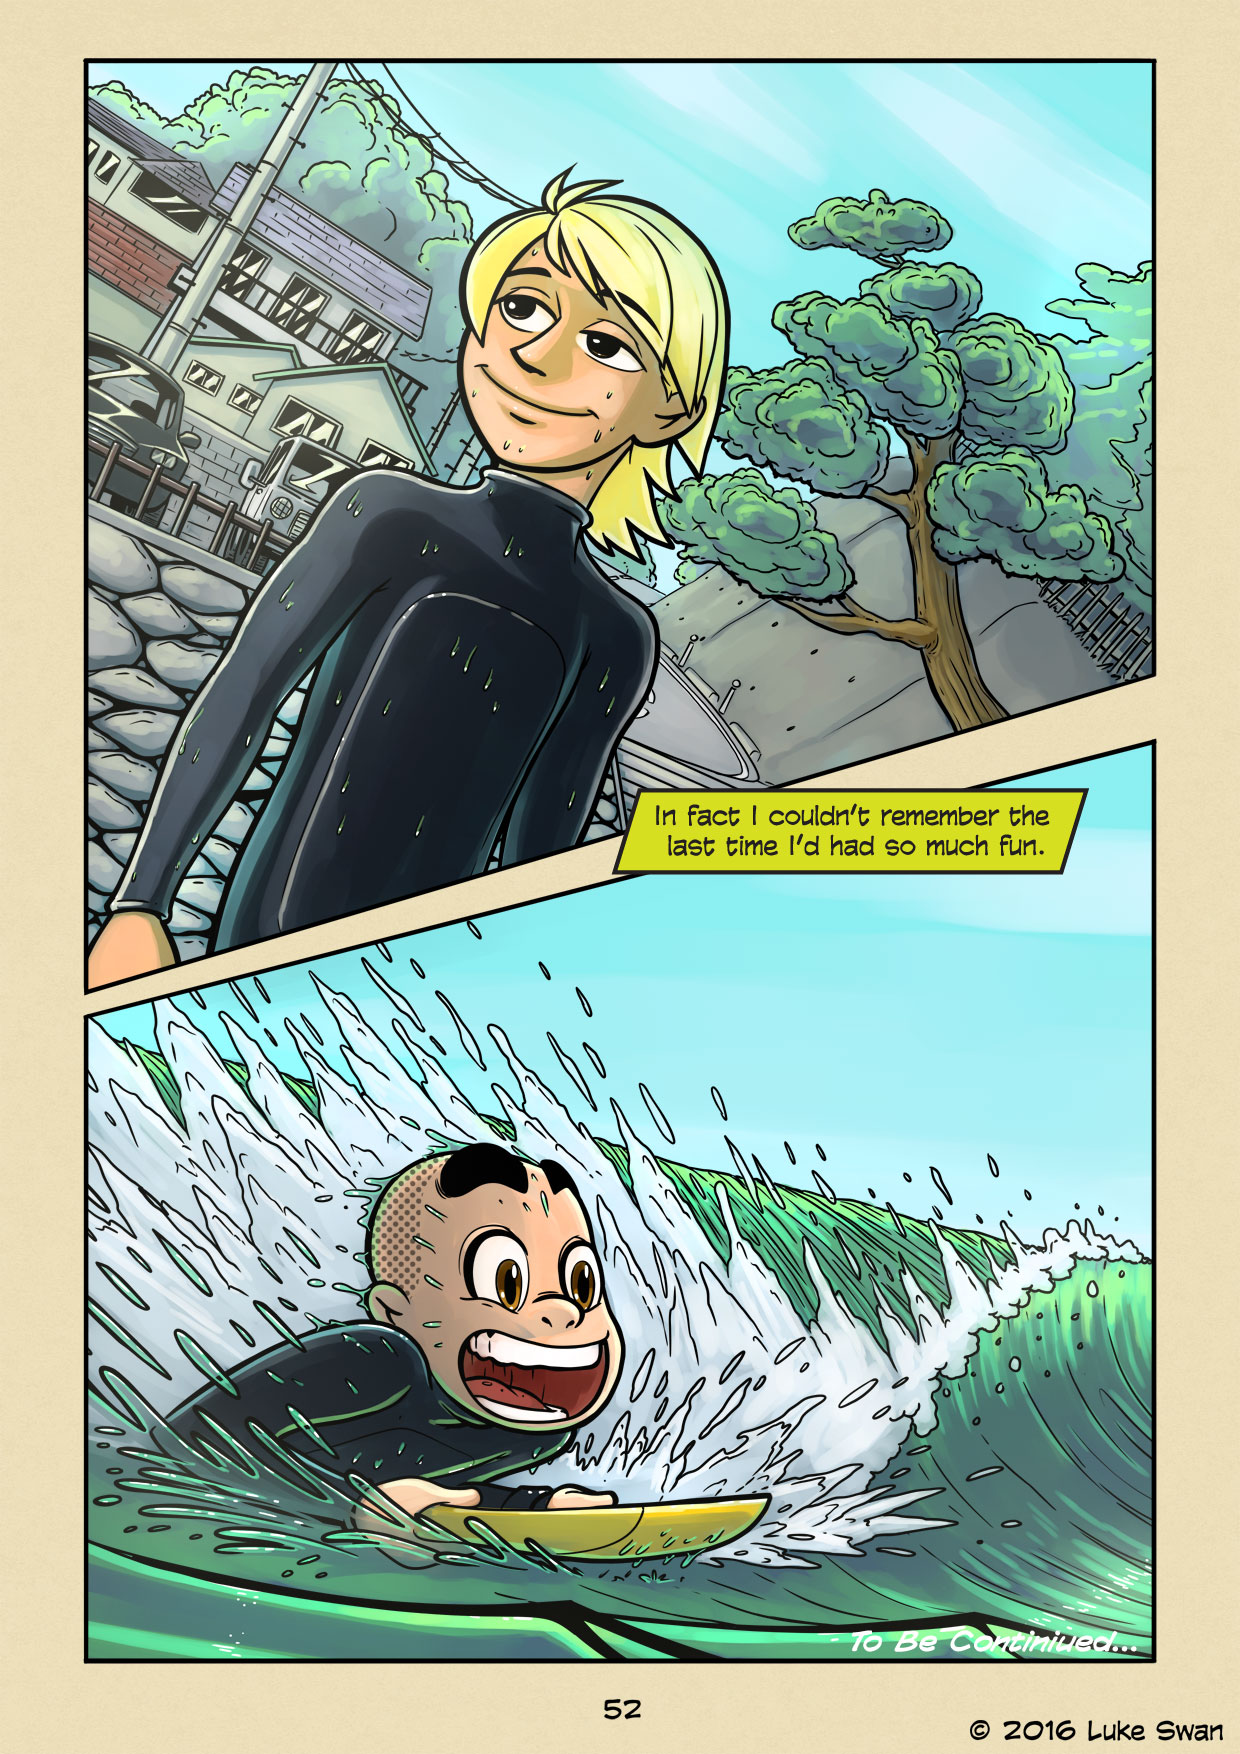 The Final Page of Chapter 2